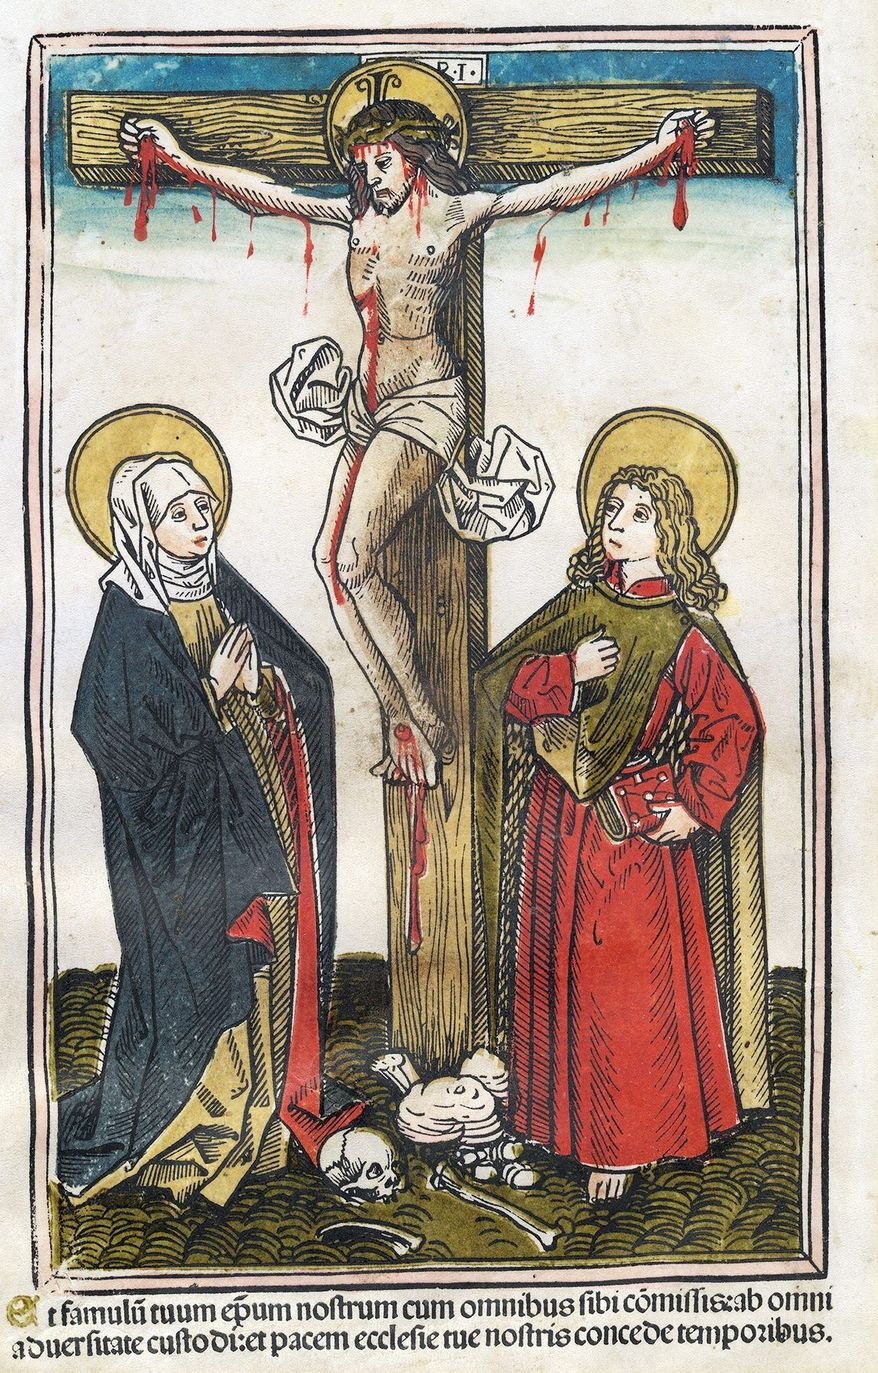 Augsburg 15th century (Attributed to Hans Burgkmair), Christ on the Cross With the Virgin and Saint John, 1493, color woodcut (National Gallery of Art photograph)